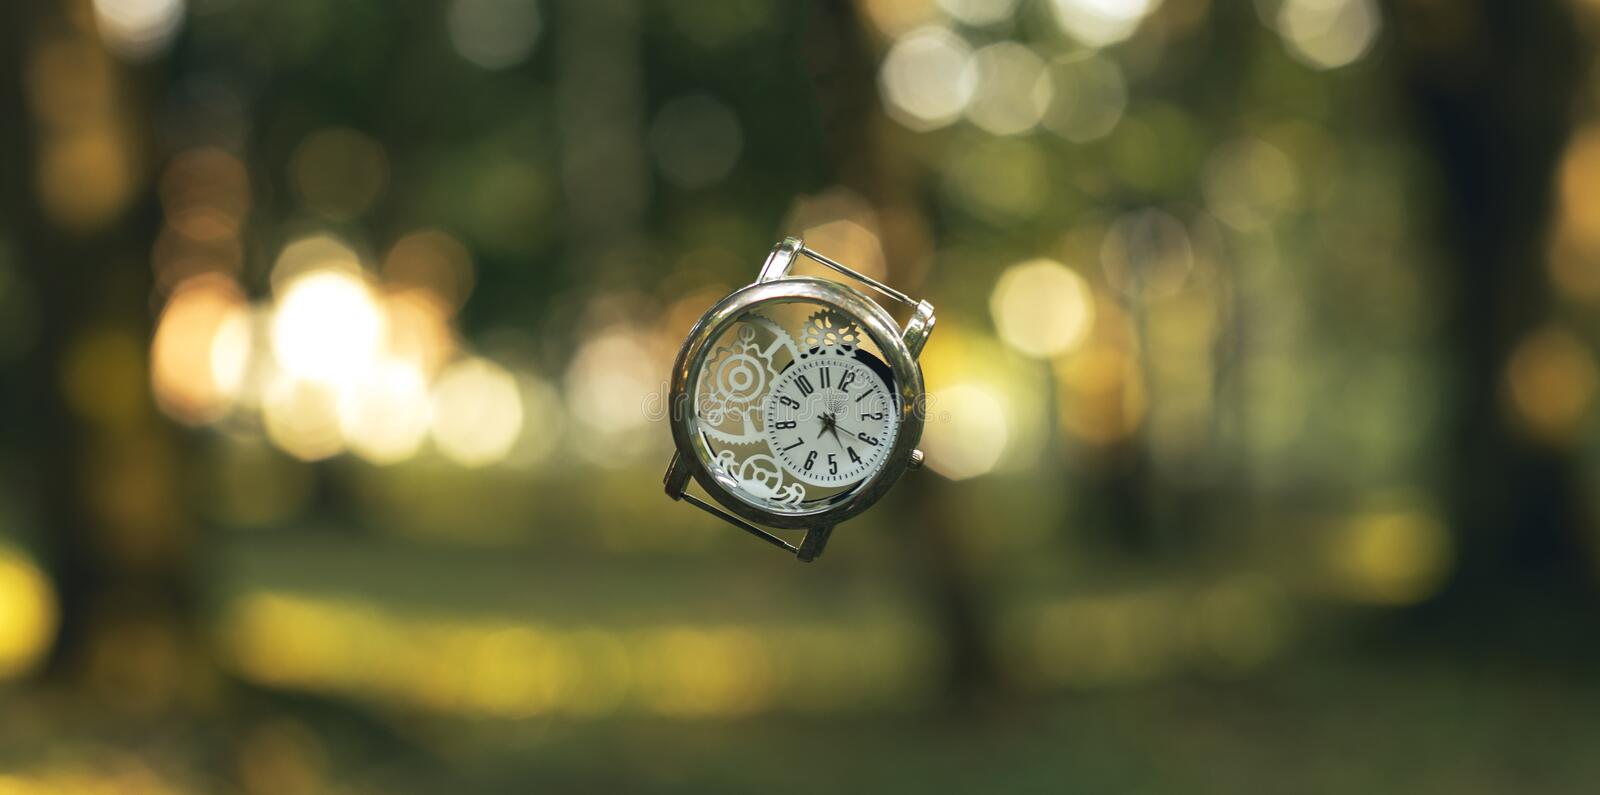 Horizontal format inspiring graphic design picture of vintage hand clock in the air on golden fairy tale forest unfocused natural. Background environment royalty free stock images